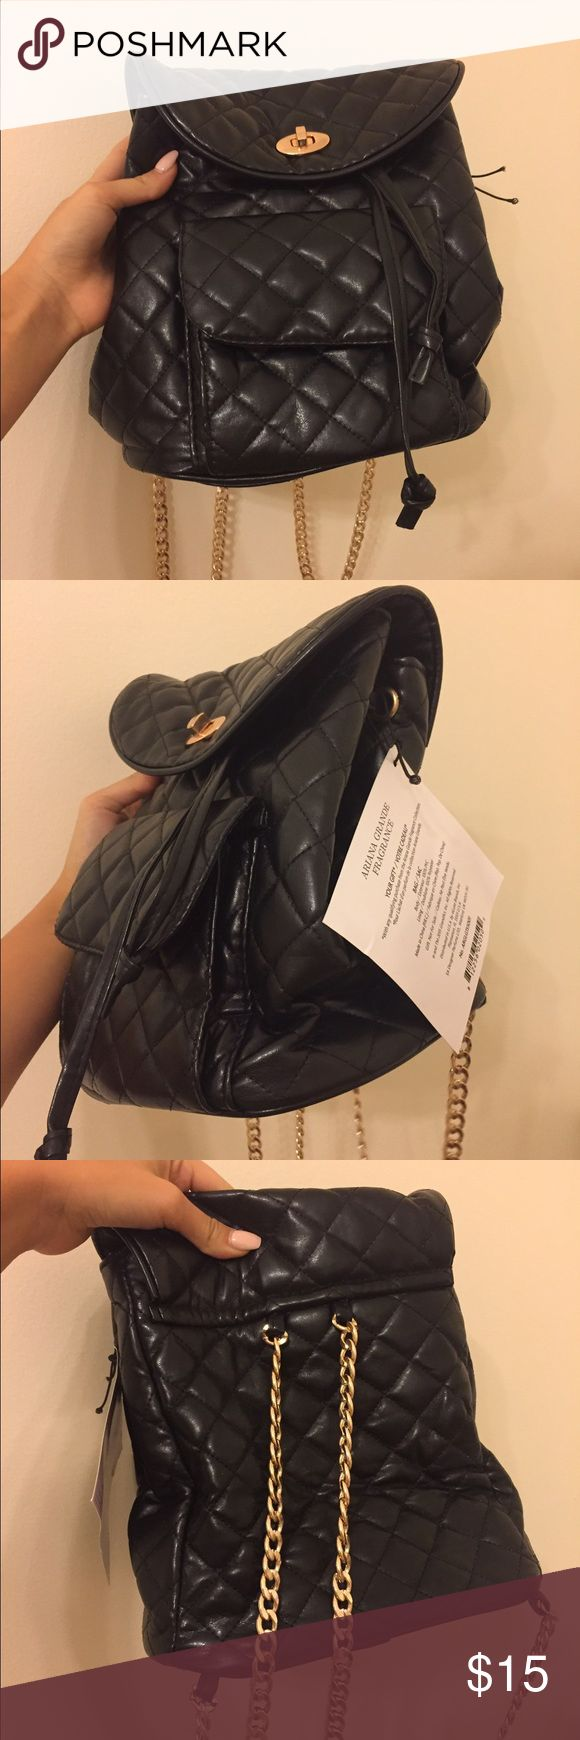 Exclusive Ariana Grande Bag this is the bag that comes with a $45 purchase of ariana's fragrance. get it by itself here! it is cute, trendy, and expensive looking. has never been used and has absolutely no signs of wear. Ariana Grande Bags Backpacks